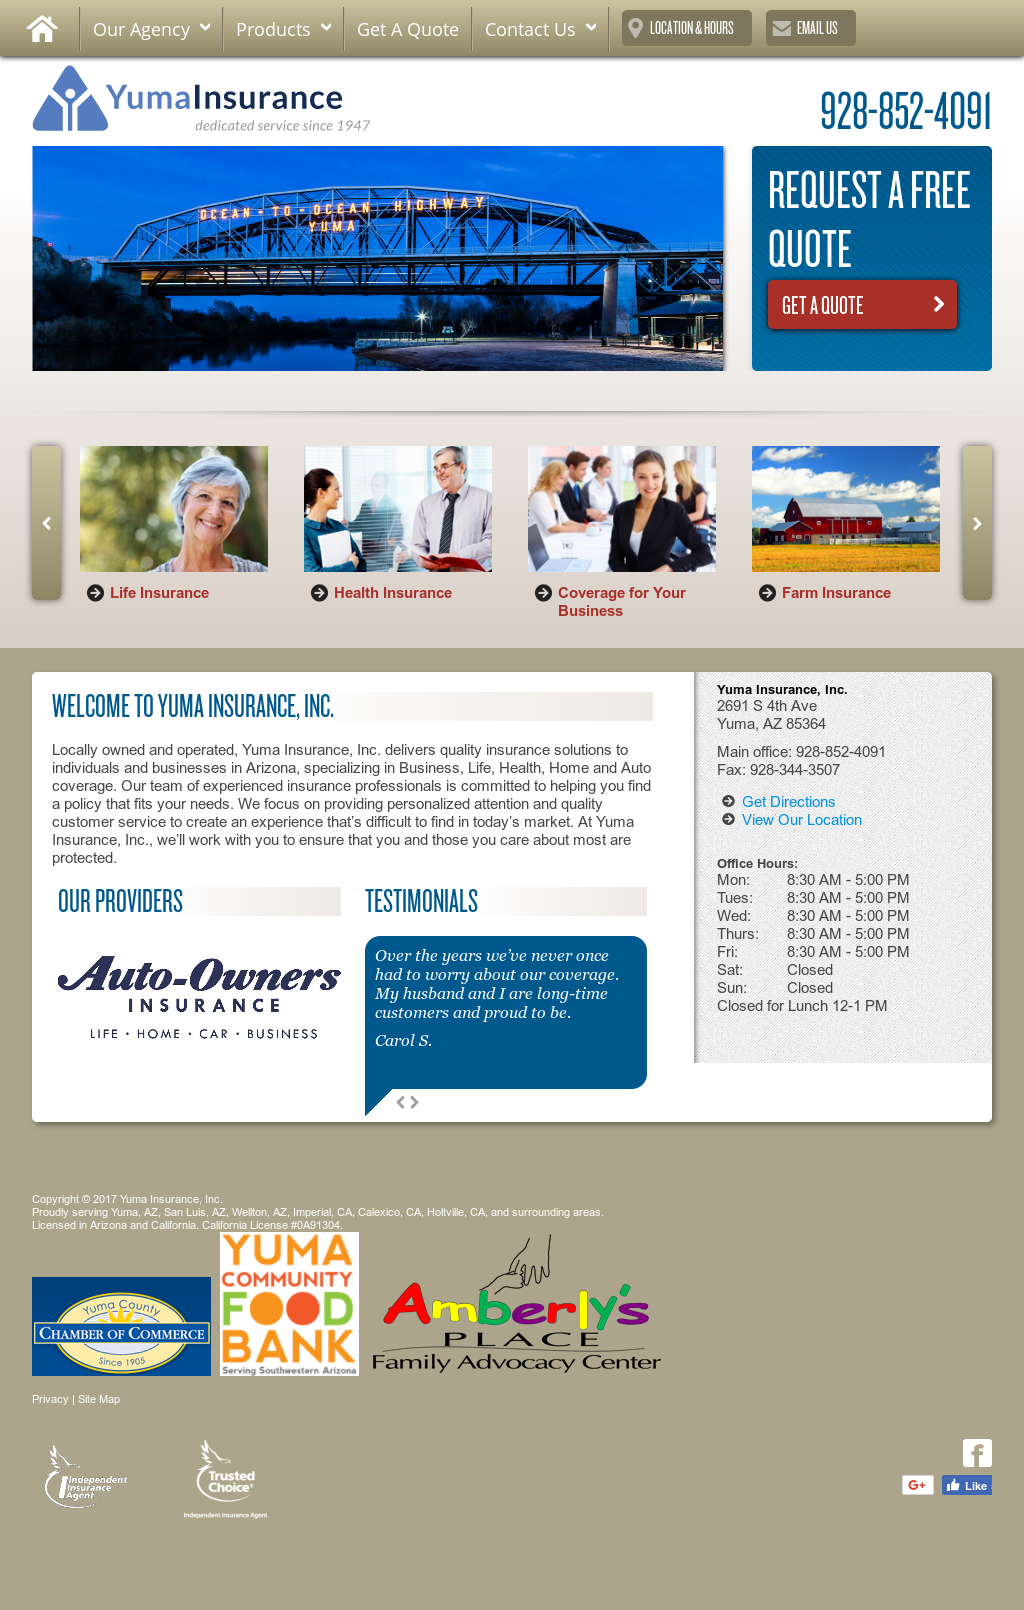 Yuma Insurance Competitors, Revenue and Employees - Owler